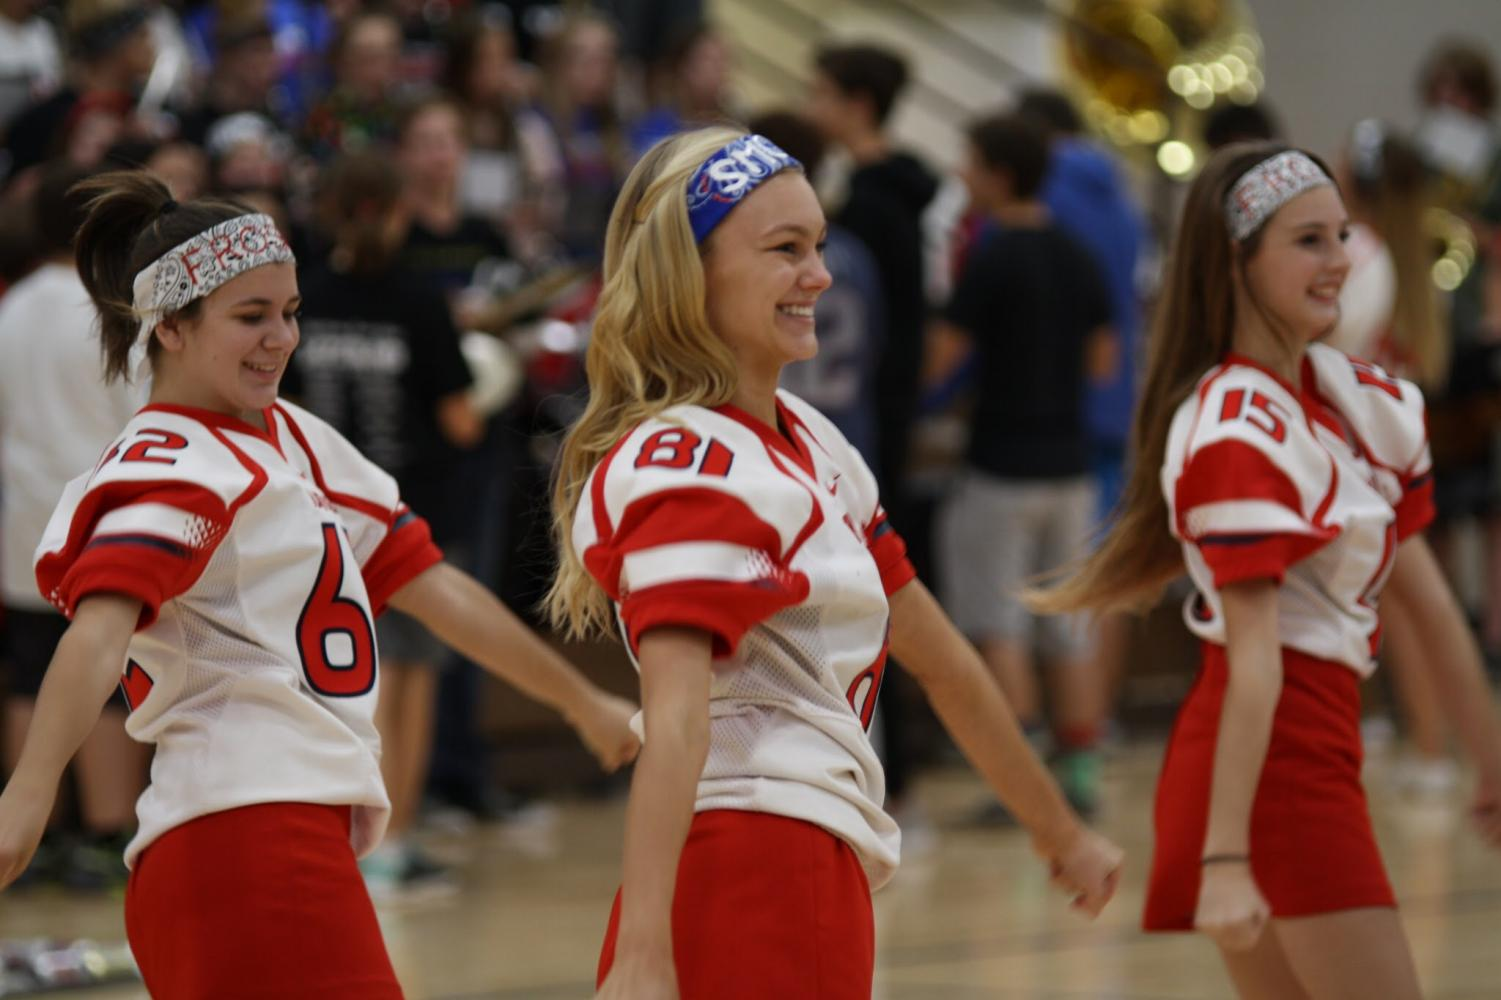 Platteview cheerleaders spread their school spirit at the 2017-2018 pep rally.